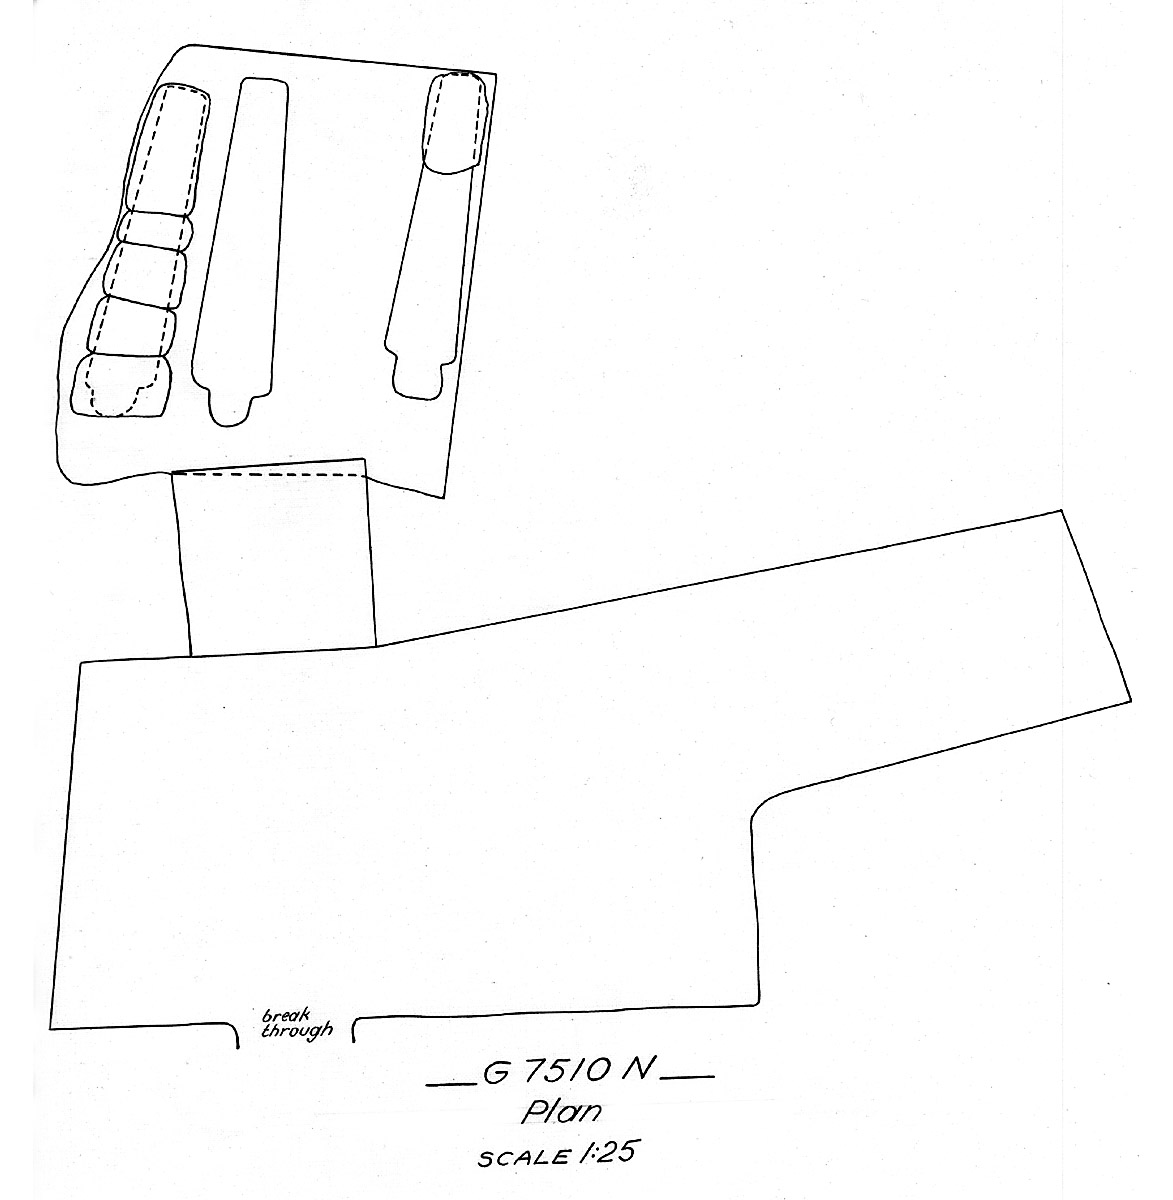 Maps and plans: G 7510, Shaft N